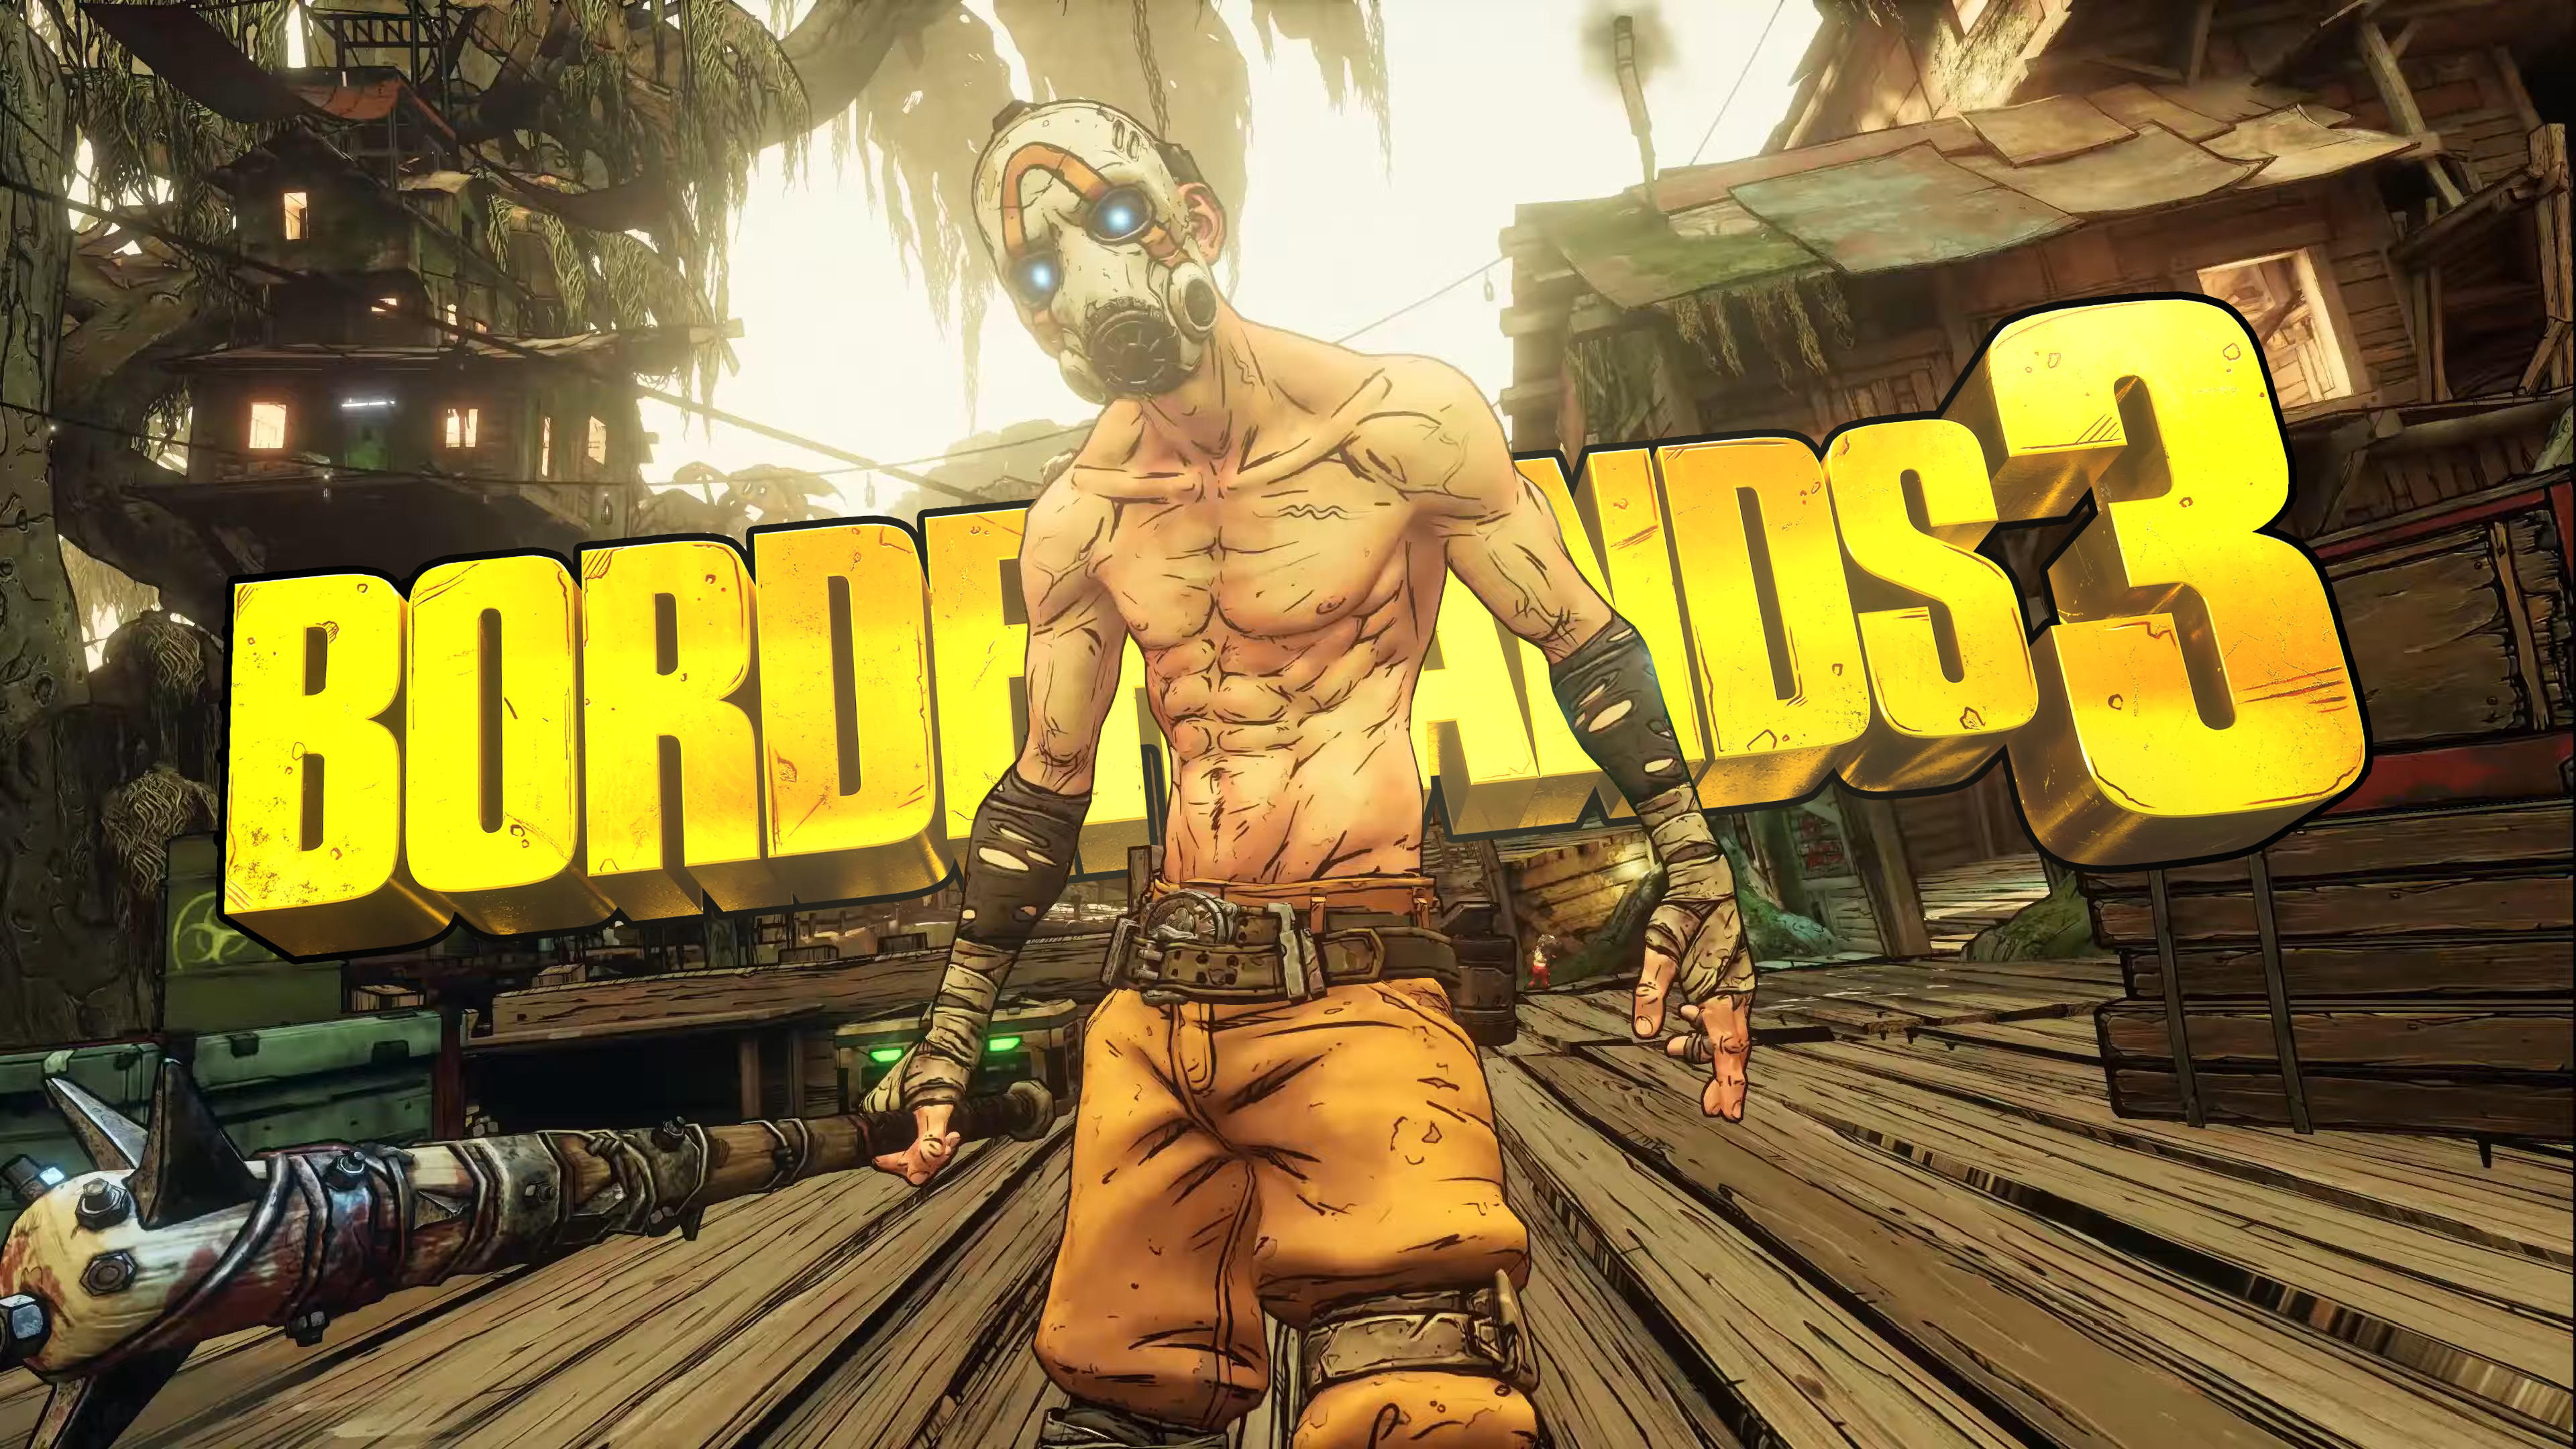 Borderlands 3 Wallpaper 4k Ultra Hd Id3086